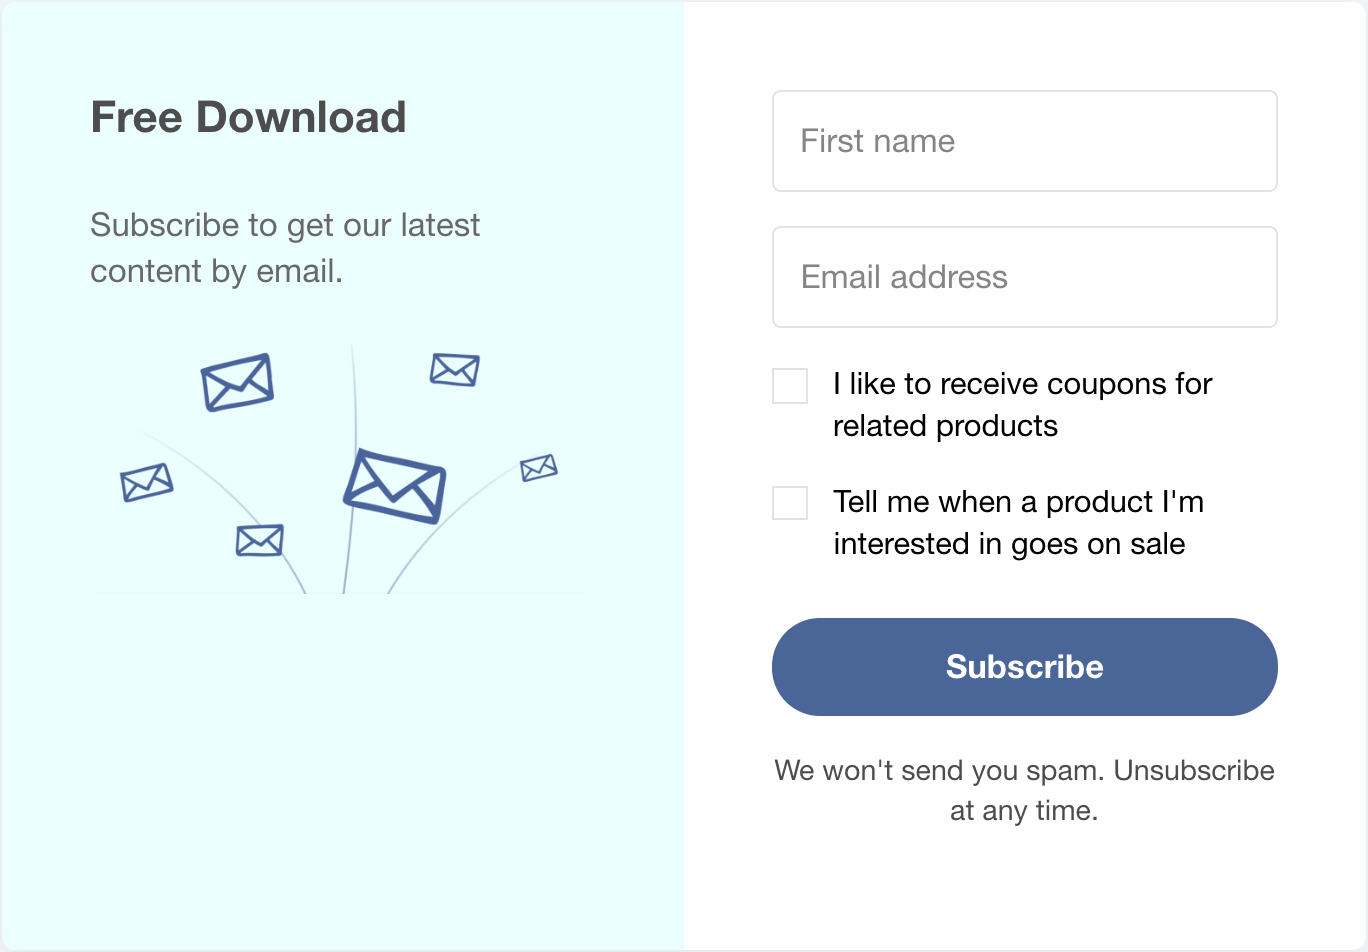 Adding Checkboxes to an Form to Tag Subscribers - ConvertKit